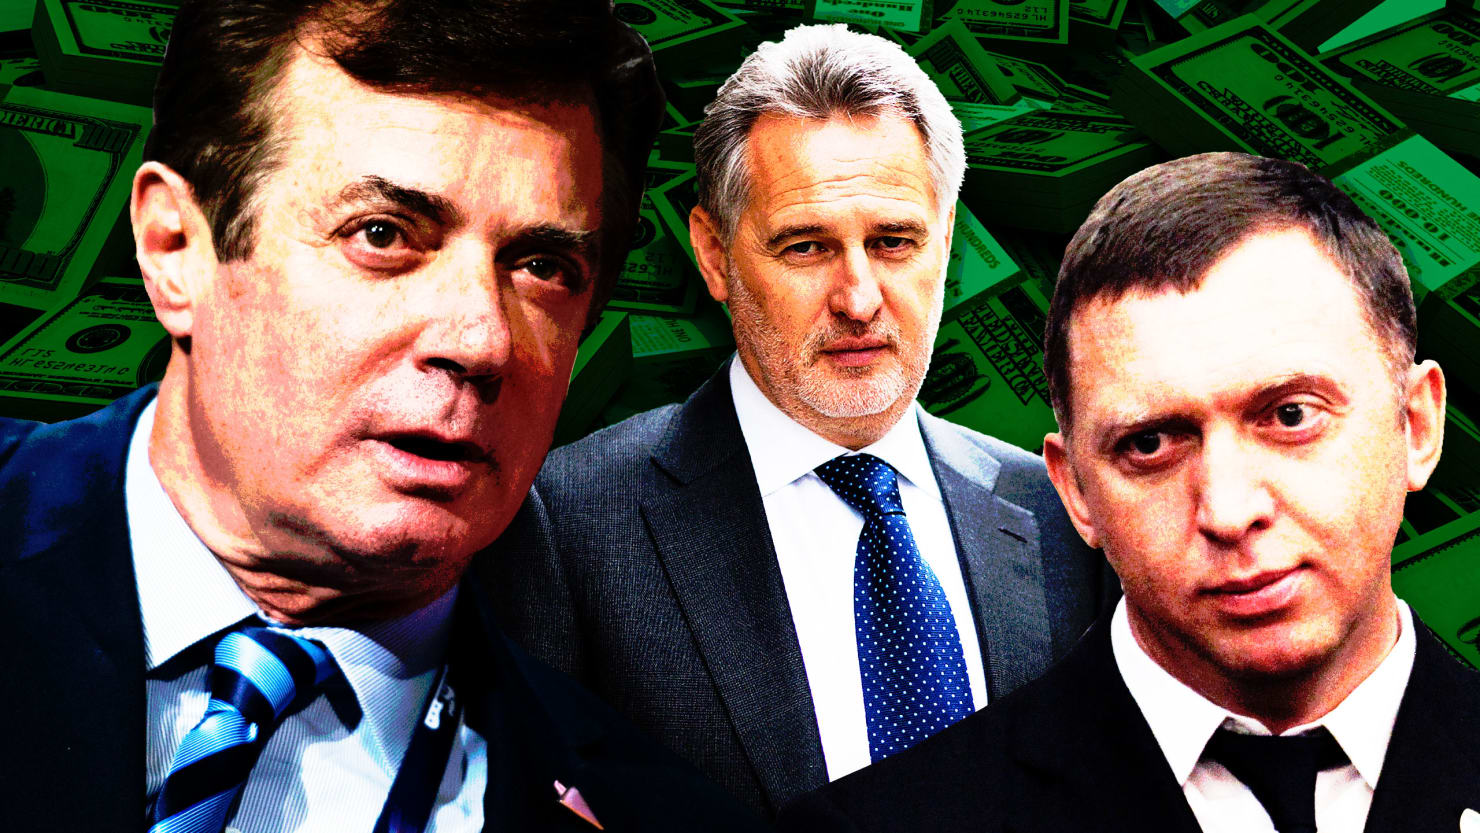 Paul Manafort sought $85m deal with Putin Ally and gangster